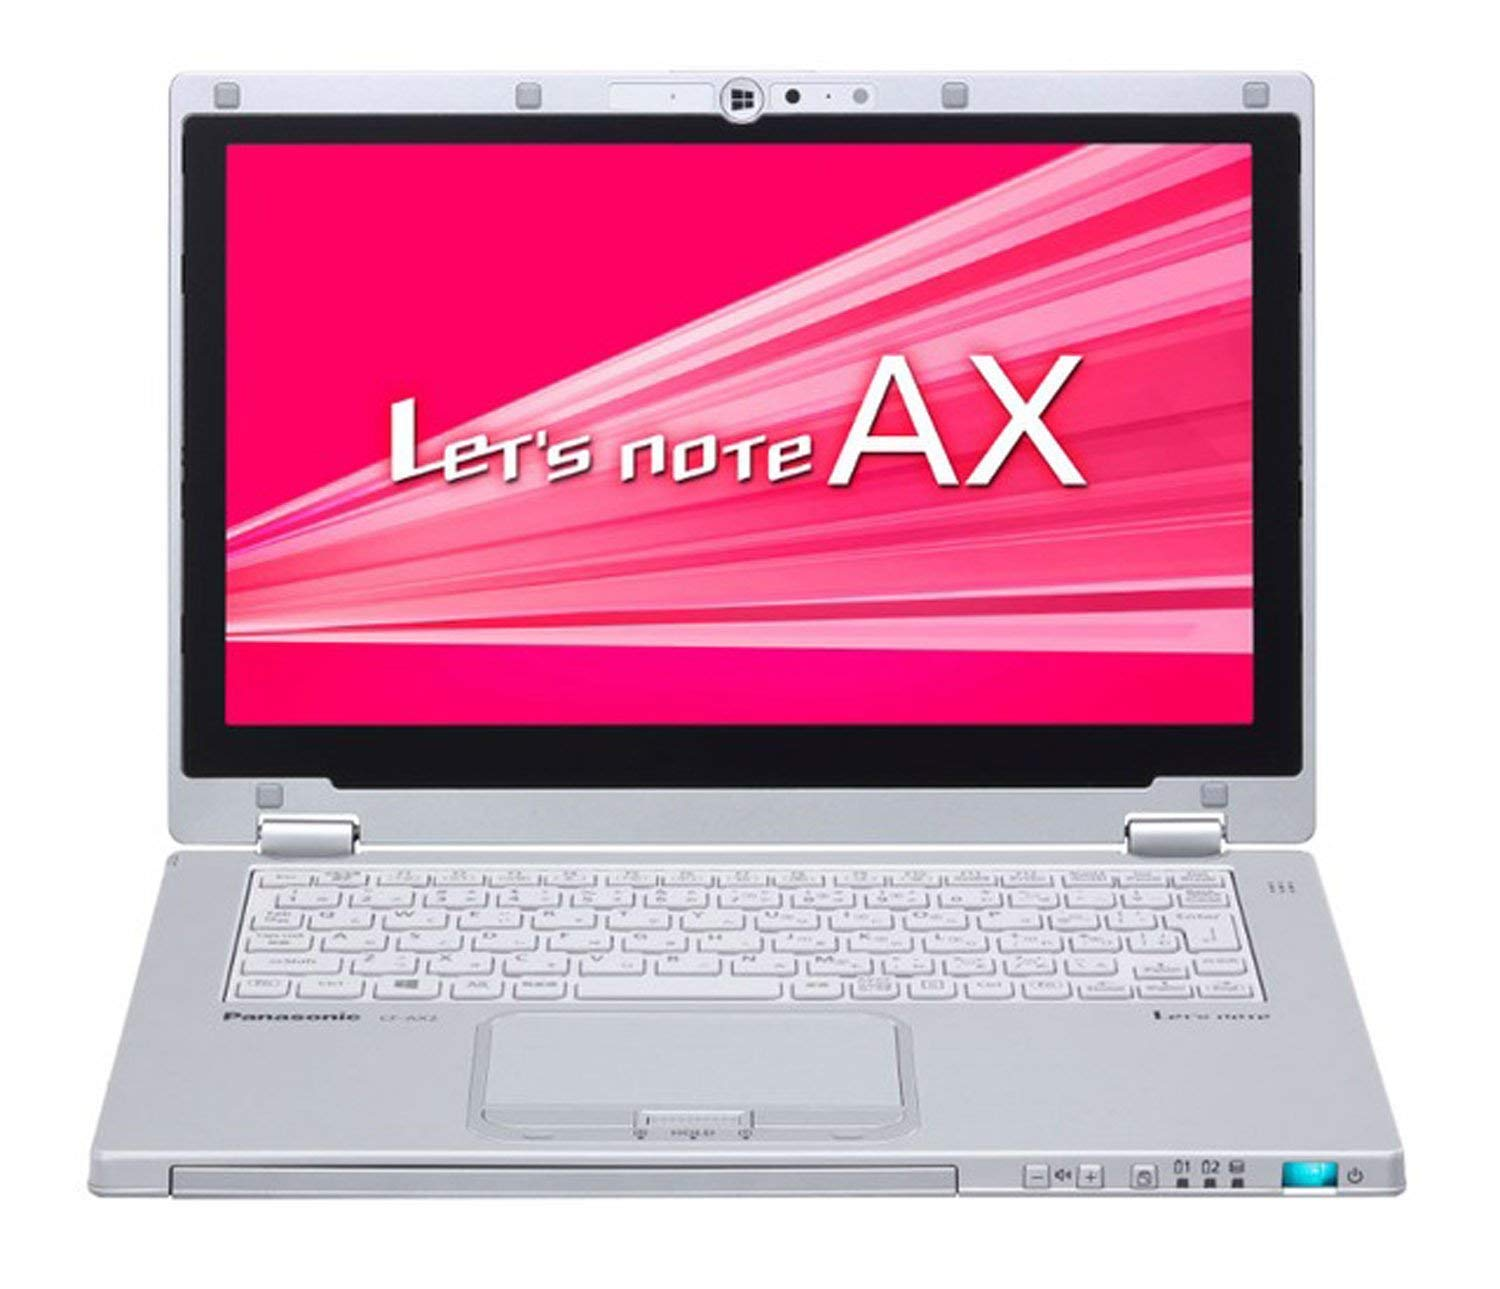 【2018秋冬新作】 【Microsoft Office 2010搭載】 Core【SSD256GB】【Win Let'snote 10搭載】Panasonic Office Let'snote CF-AX2 ■ Core i5-3437U/8GB/SSD 256GB/タッチパネル/Windows10Pro64bit搭載 B07GVMNDMF, 金物PRO:9aff1ce1 --- arianechie.dominiotemporario.com